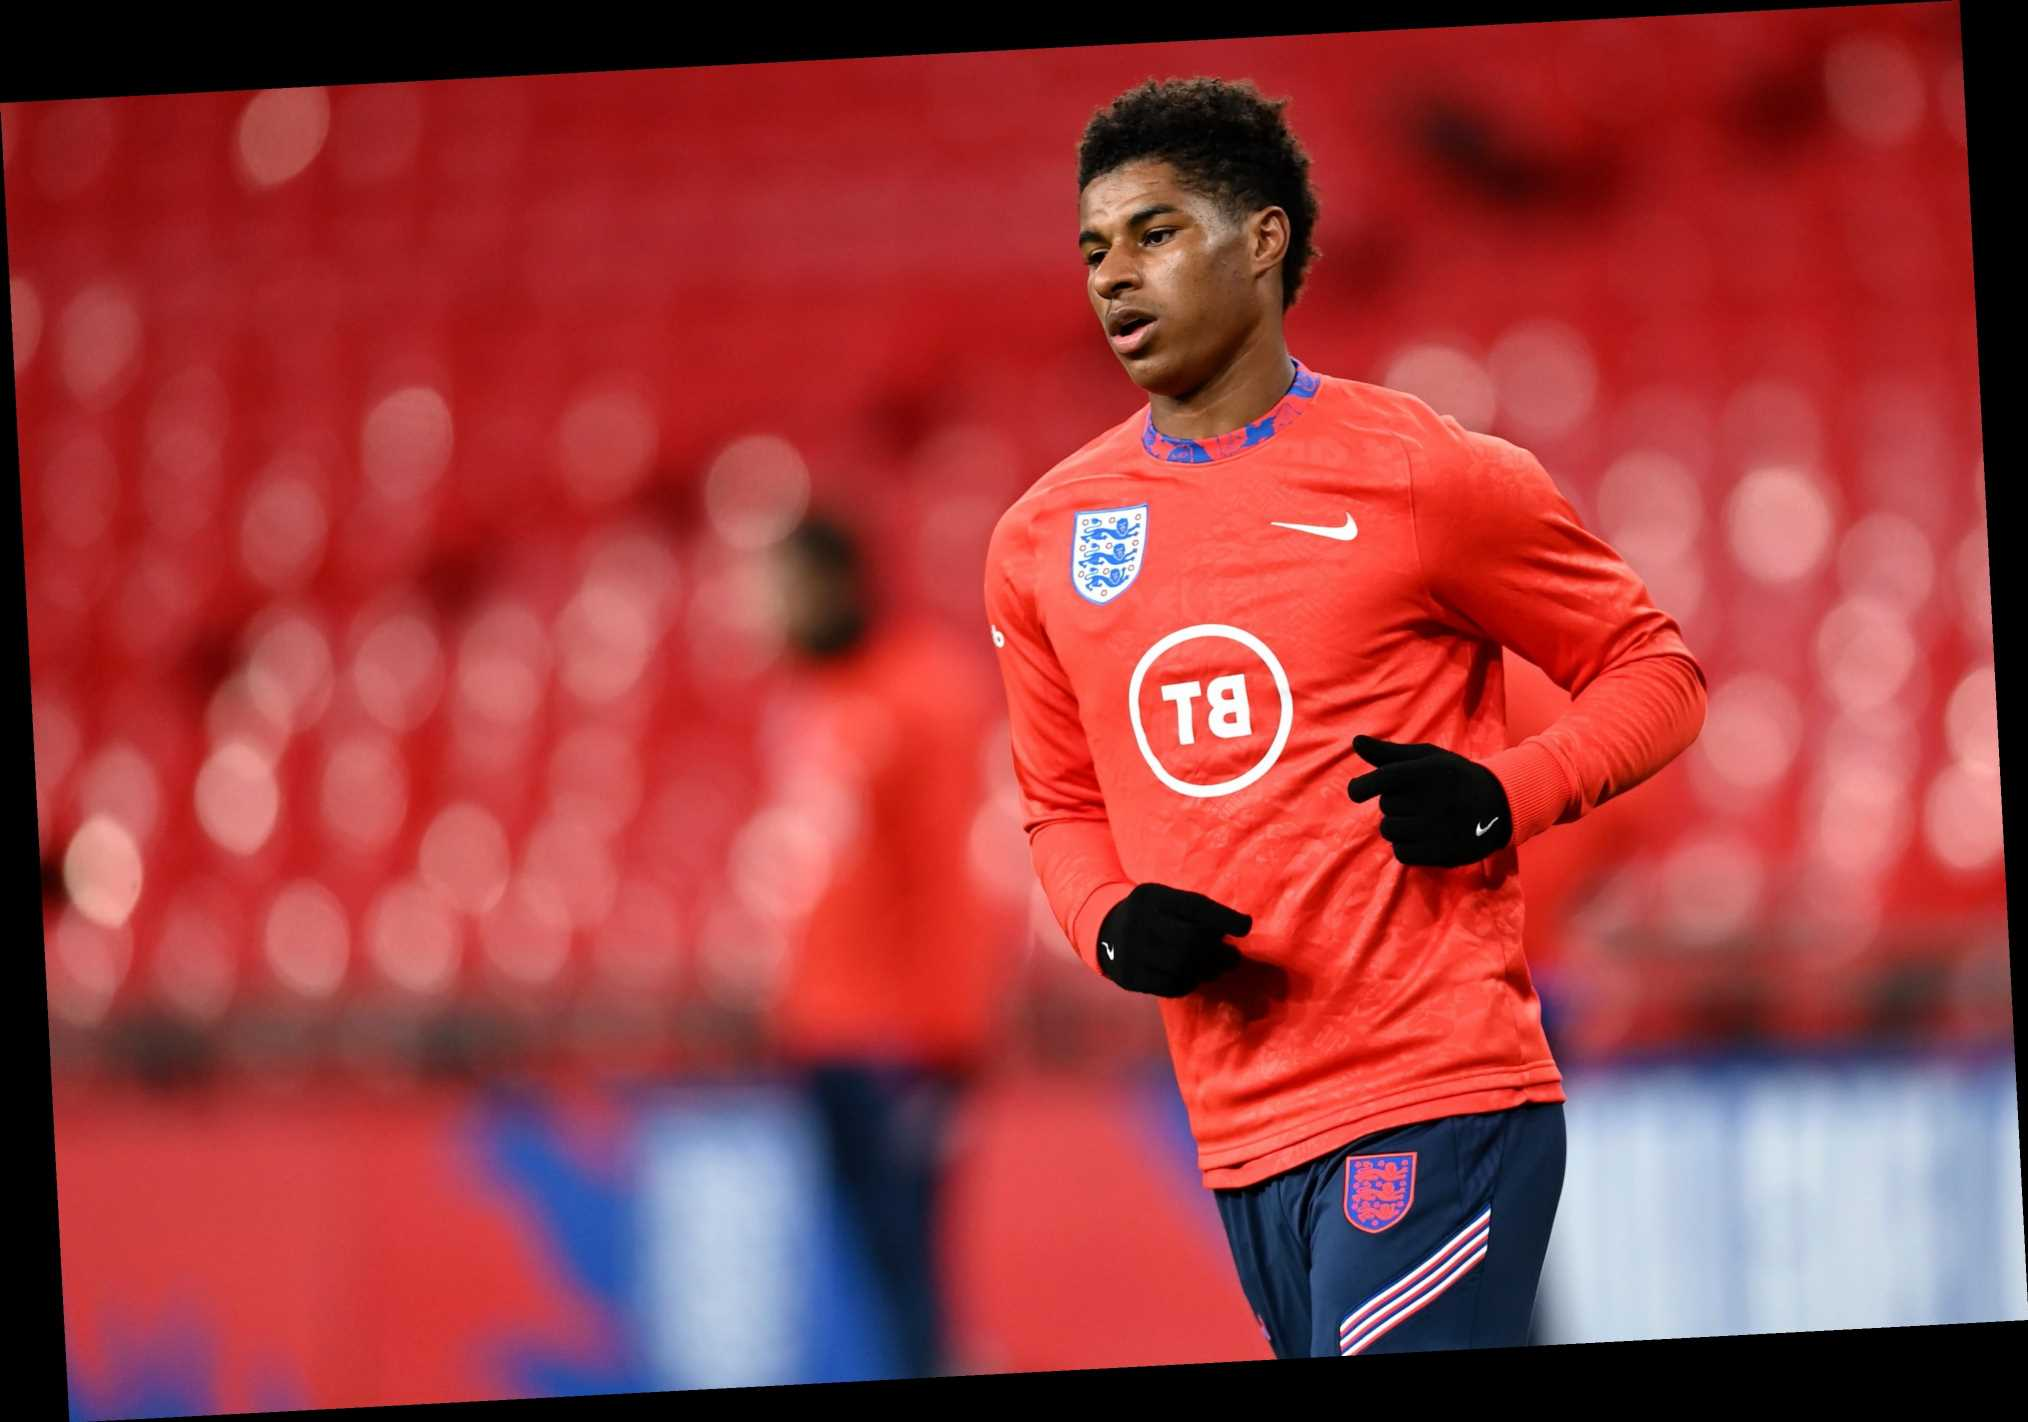 Man U's Rashford keeps pressure on government to feed kids